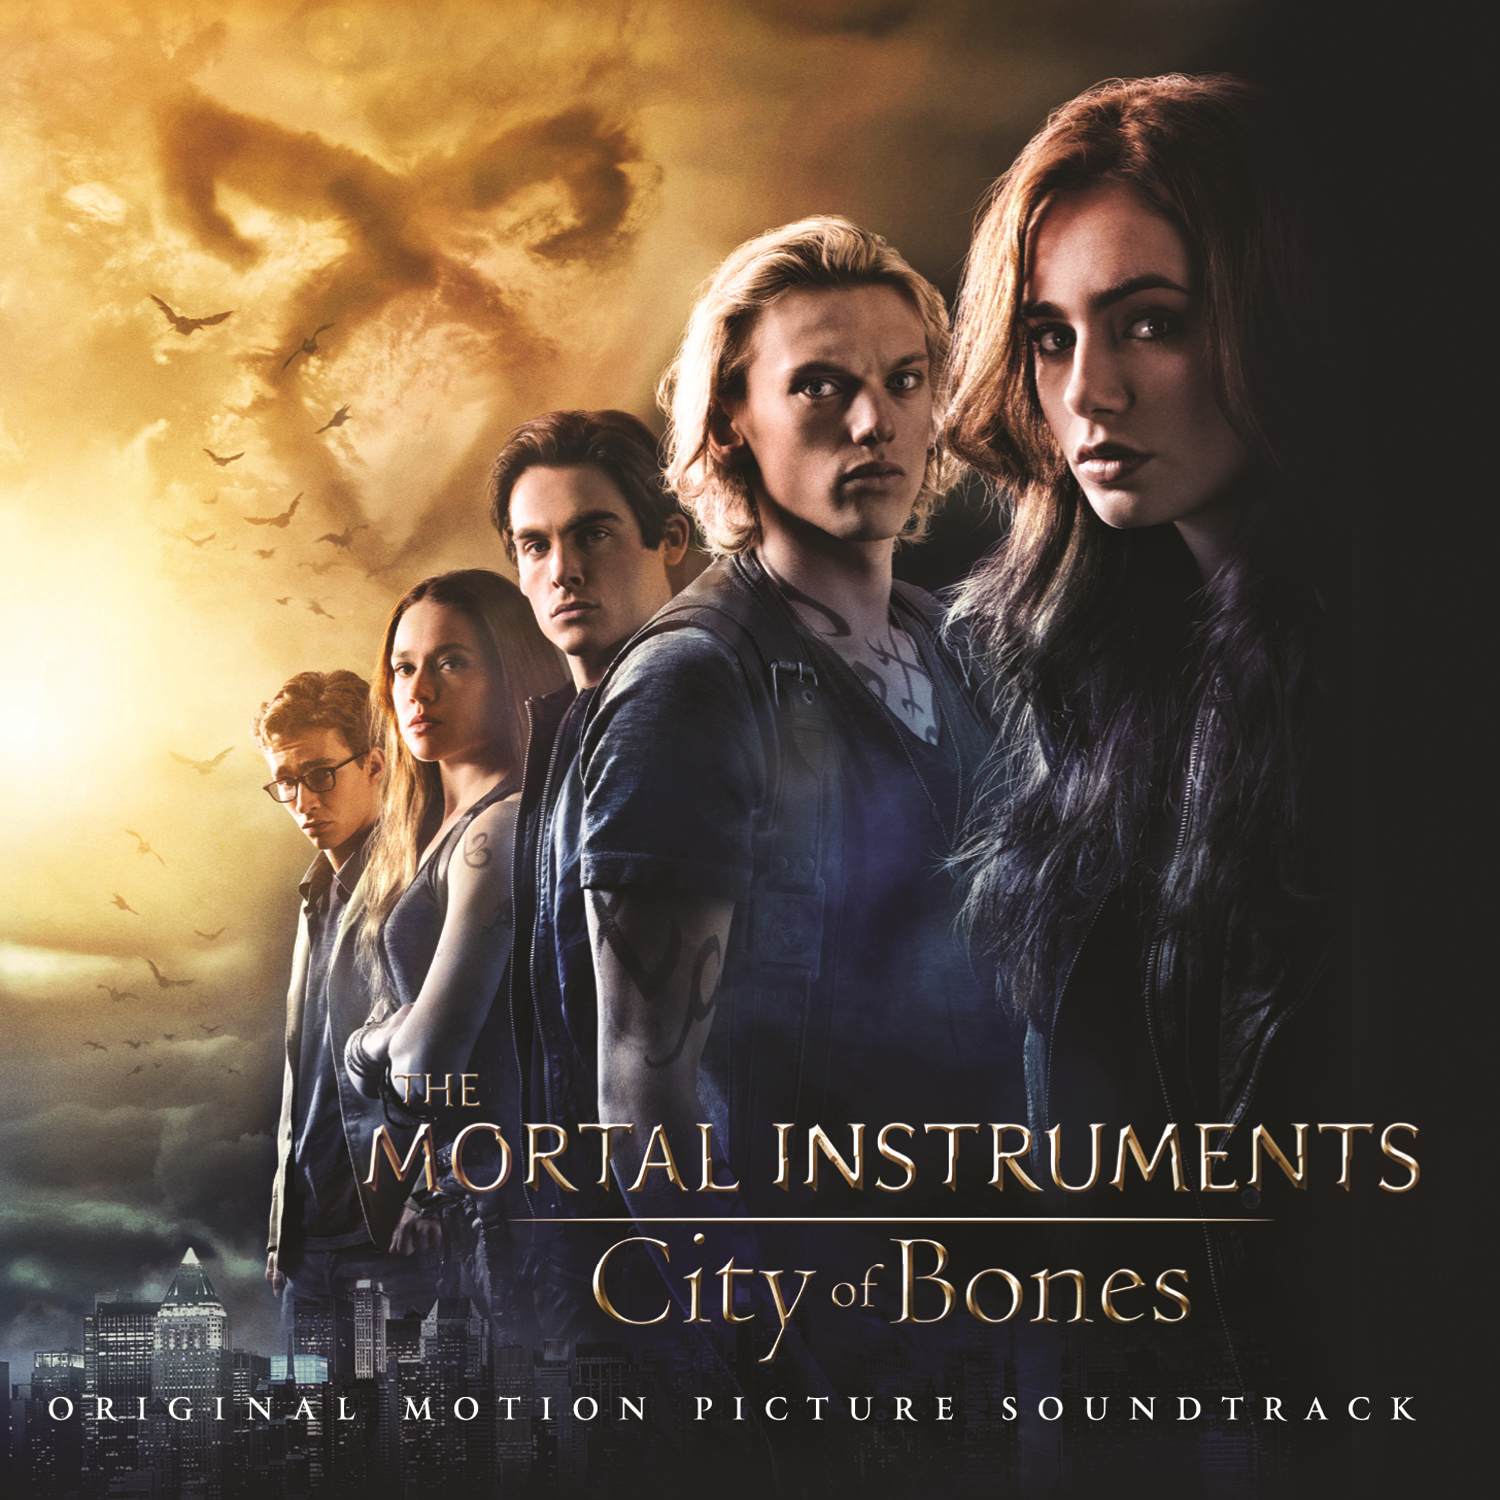 which mortal instruments character are you? | playbuzz